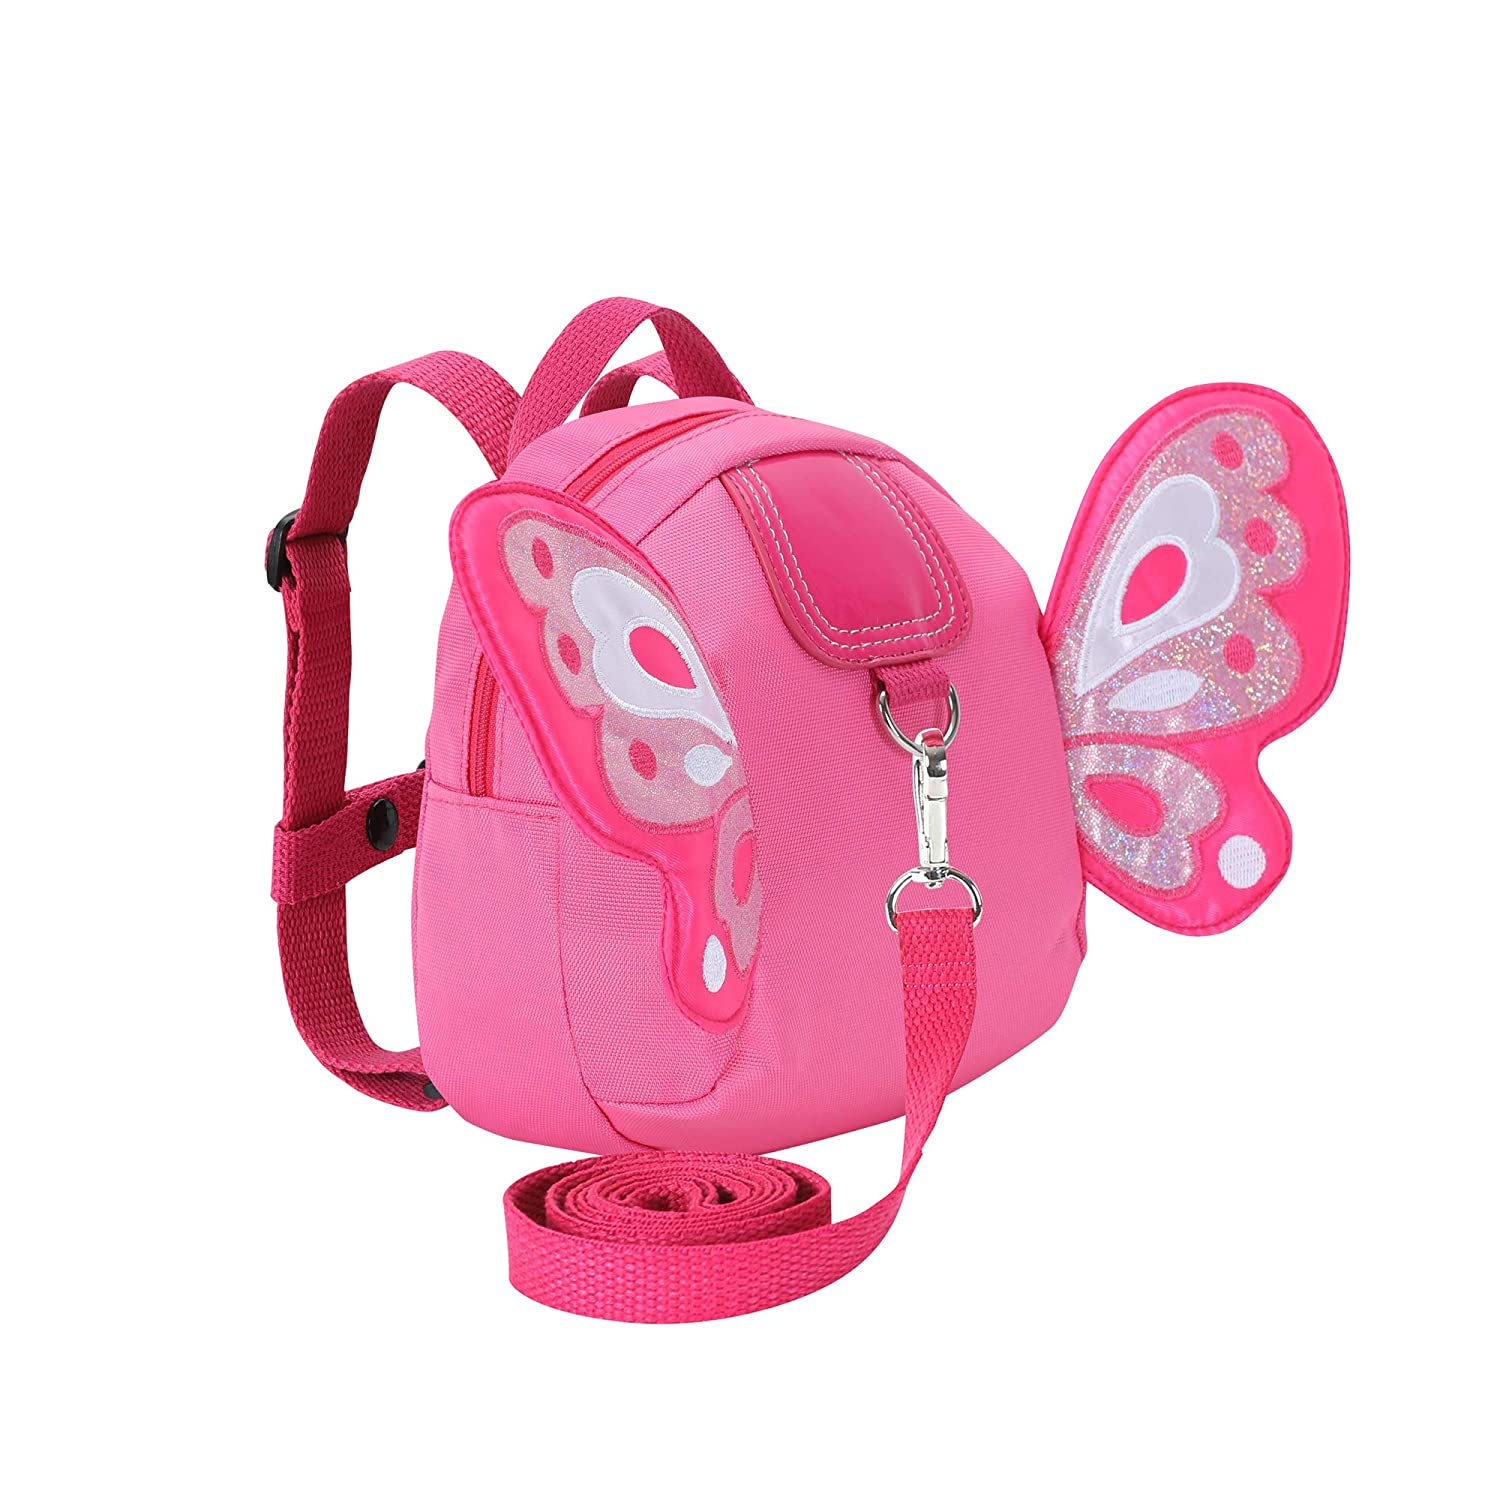 Toddler Walking Safety Backpacks with Leash Kid Butterfly Anti Lost Bags for 1.5 to 3 Years Old Boys Girls (Butterfly Deep Pink)